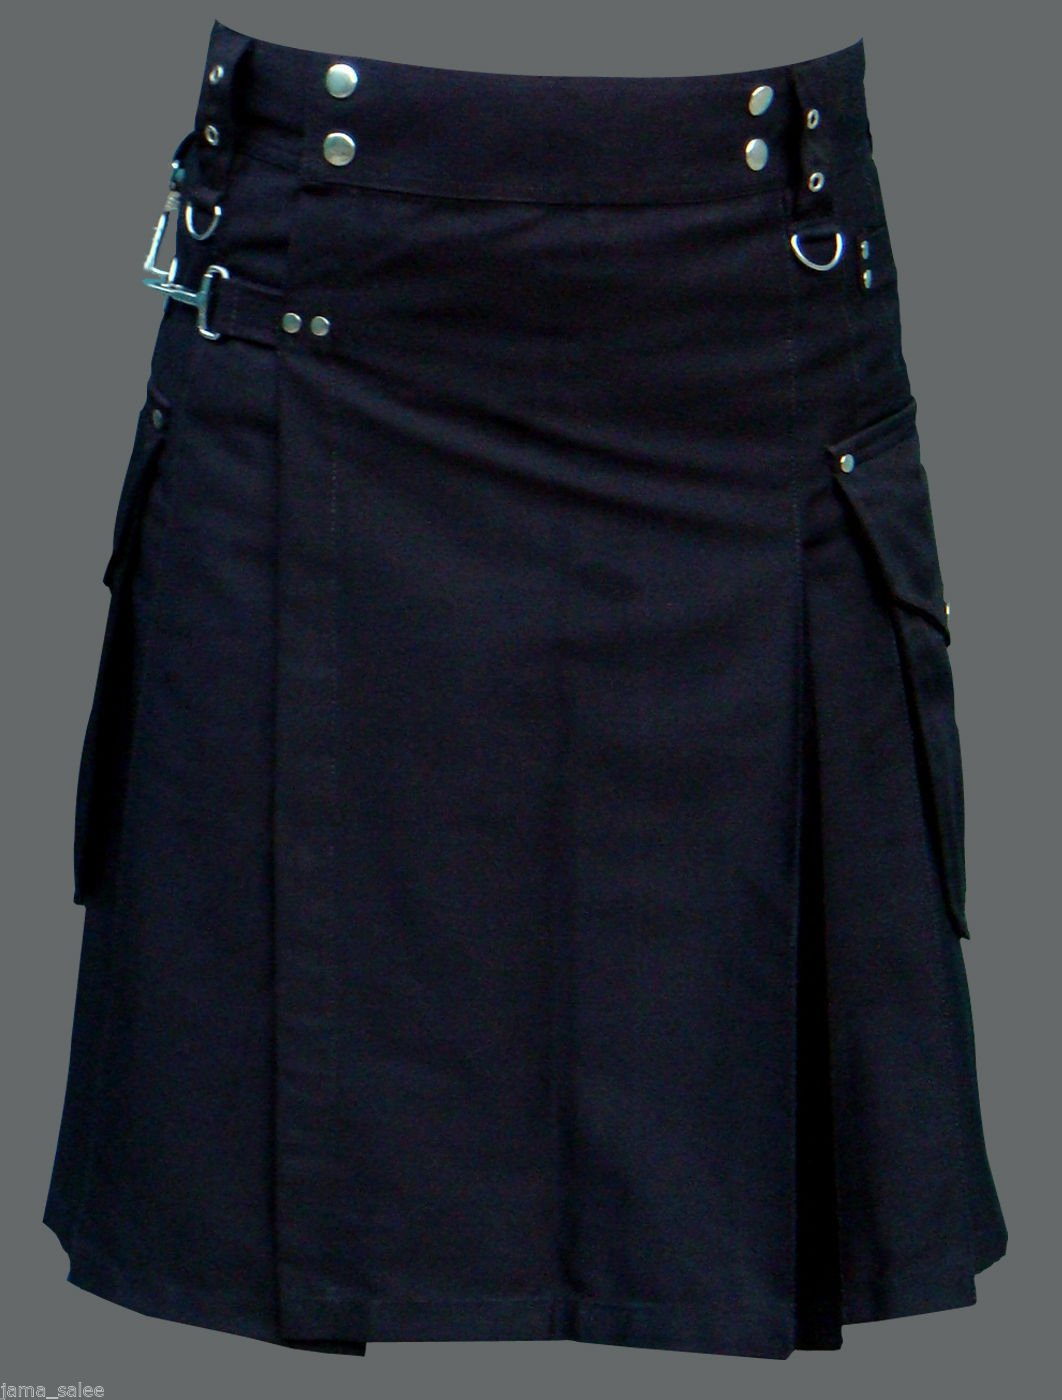 Deluxe Black Cotton Kilt Handmade Utility Gothic Modern Kilt with Cargo Pockets Waist Size 50 to Fit